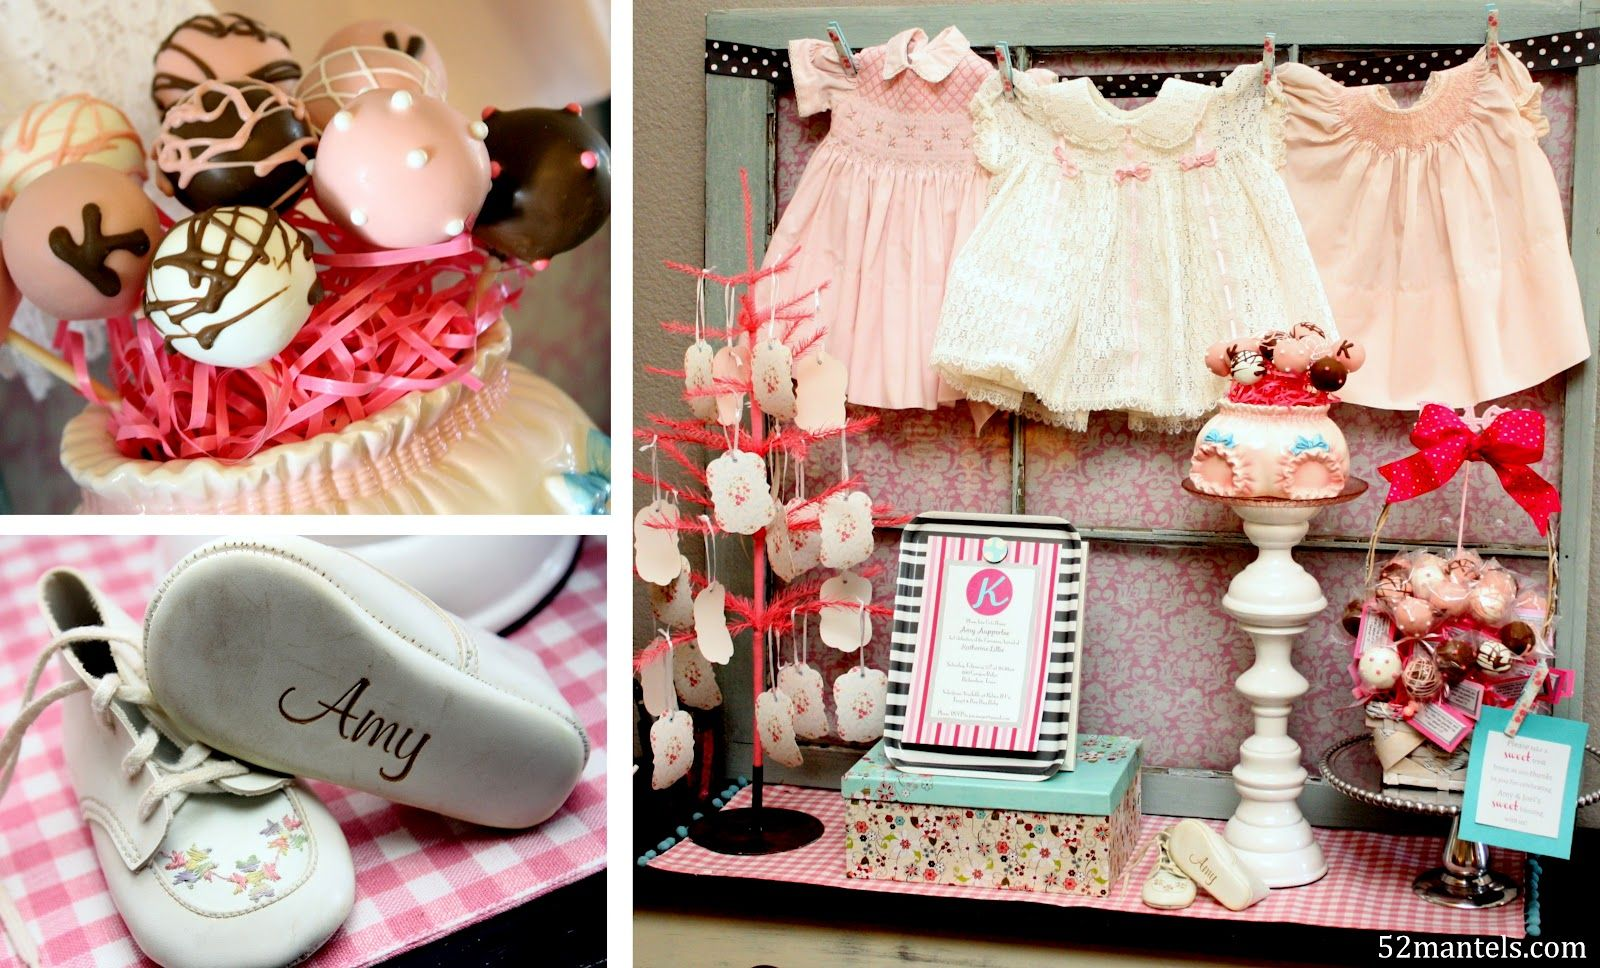 52 mantels a sweet girly baby shower mantel cute as a. Black Bedroom Furniture Sets. Home Design Ideas